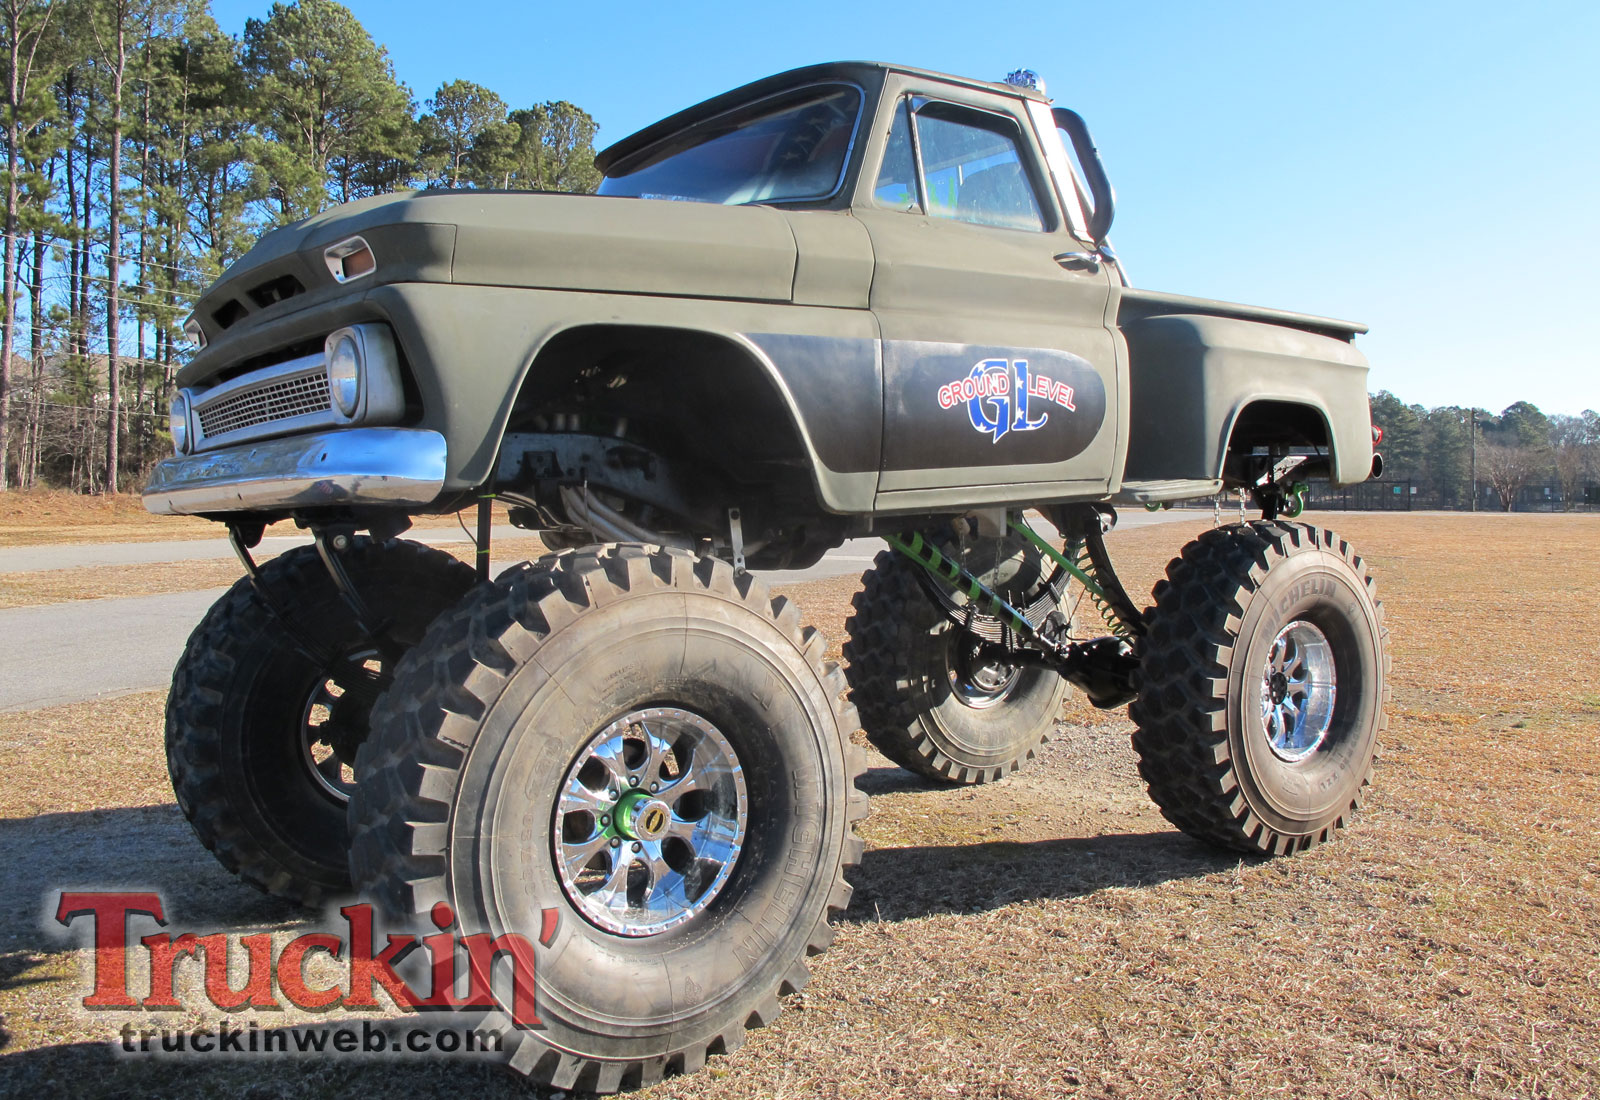 2010 Blooddrag Custom Truck Show - Web Exclusive Photo